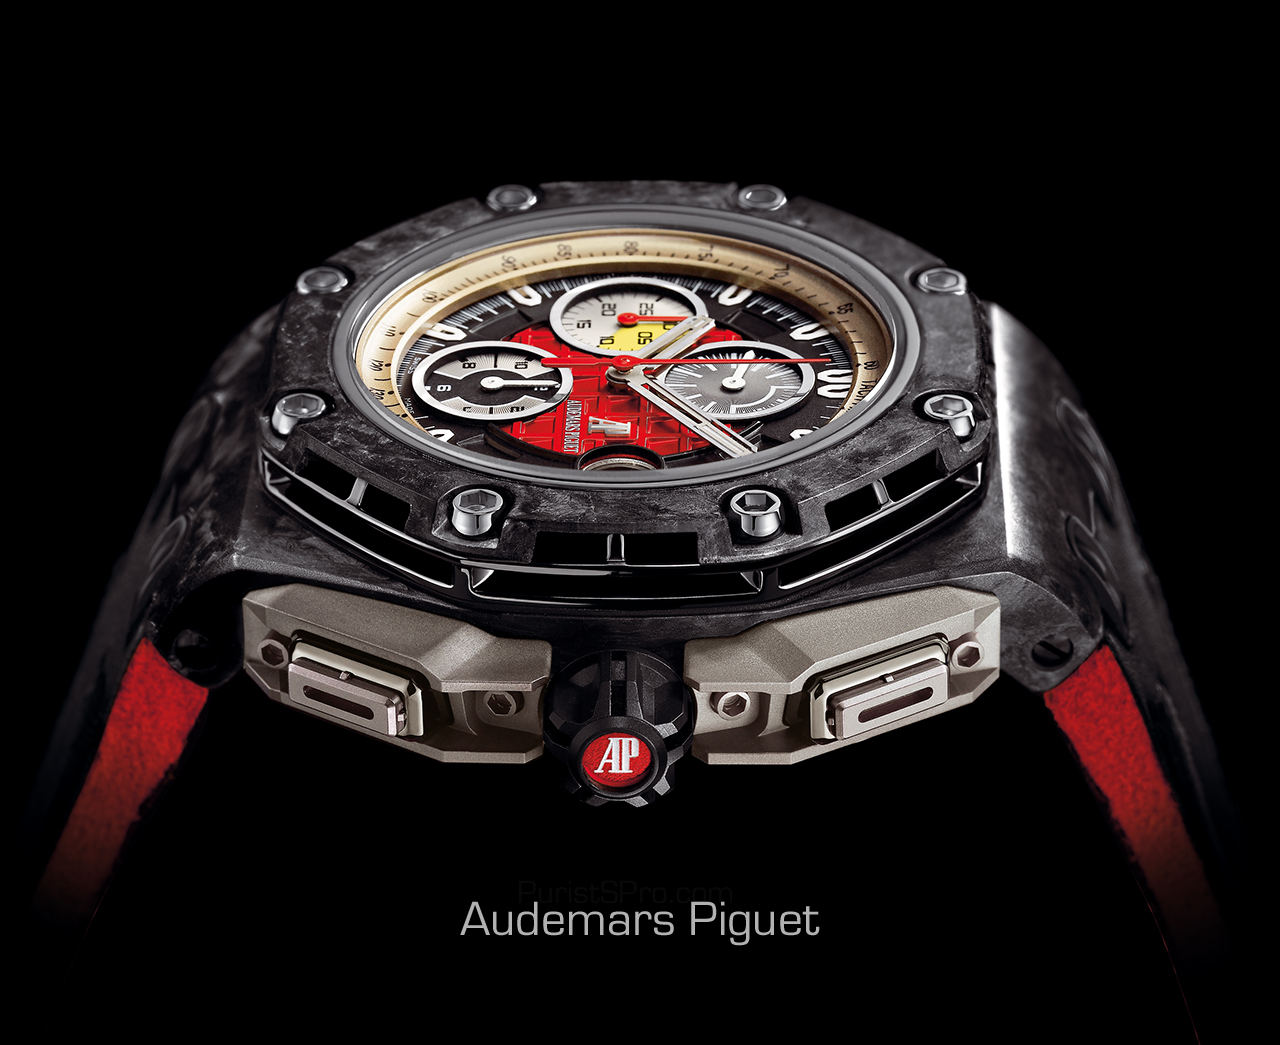 Audemars Piguet Royal Oak Offshore Grand Prix Replica Watches 02